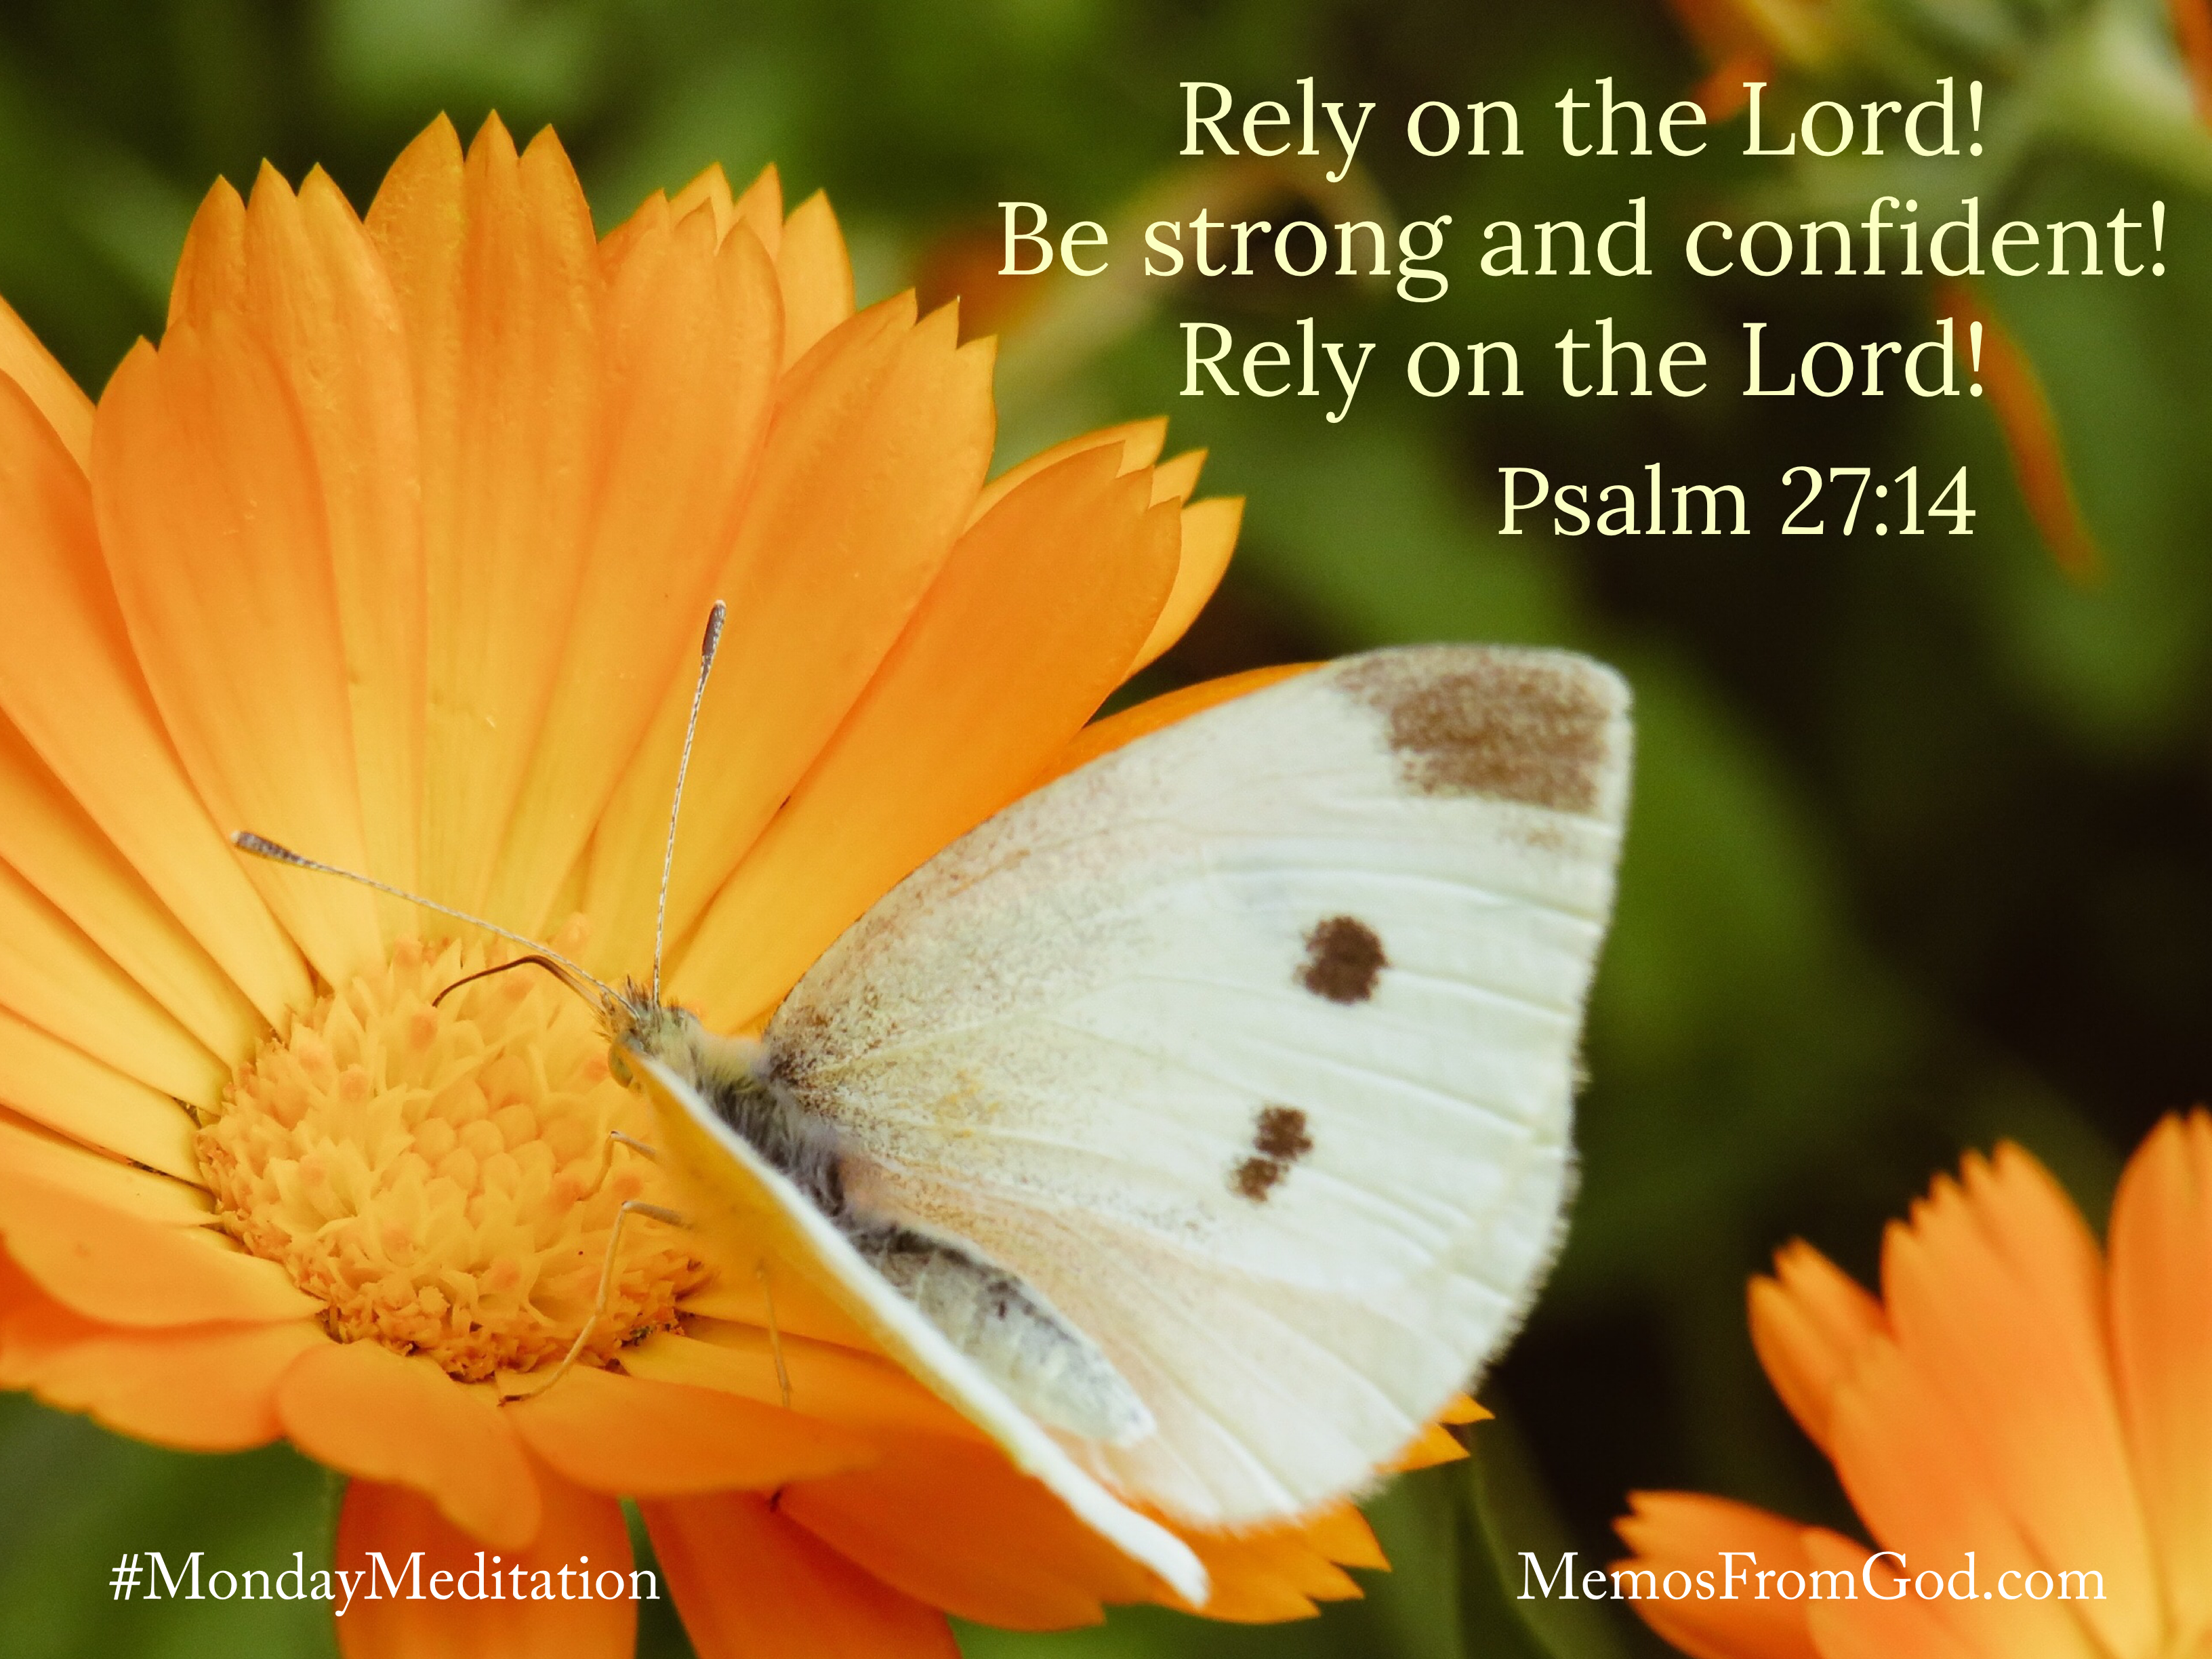 A white butterfly with brown spots on a bright orange flower. Caption: Rely on the Lord! Be strong and confident! Rely on the Lord! Psalm 27:14